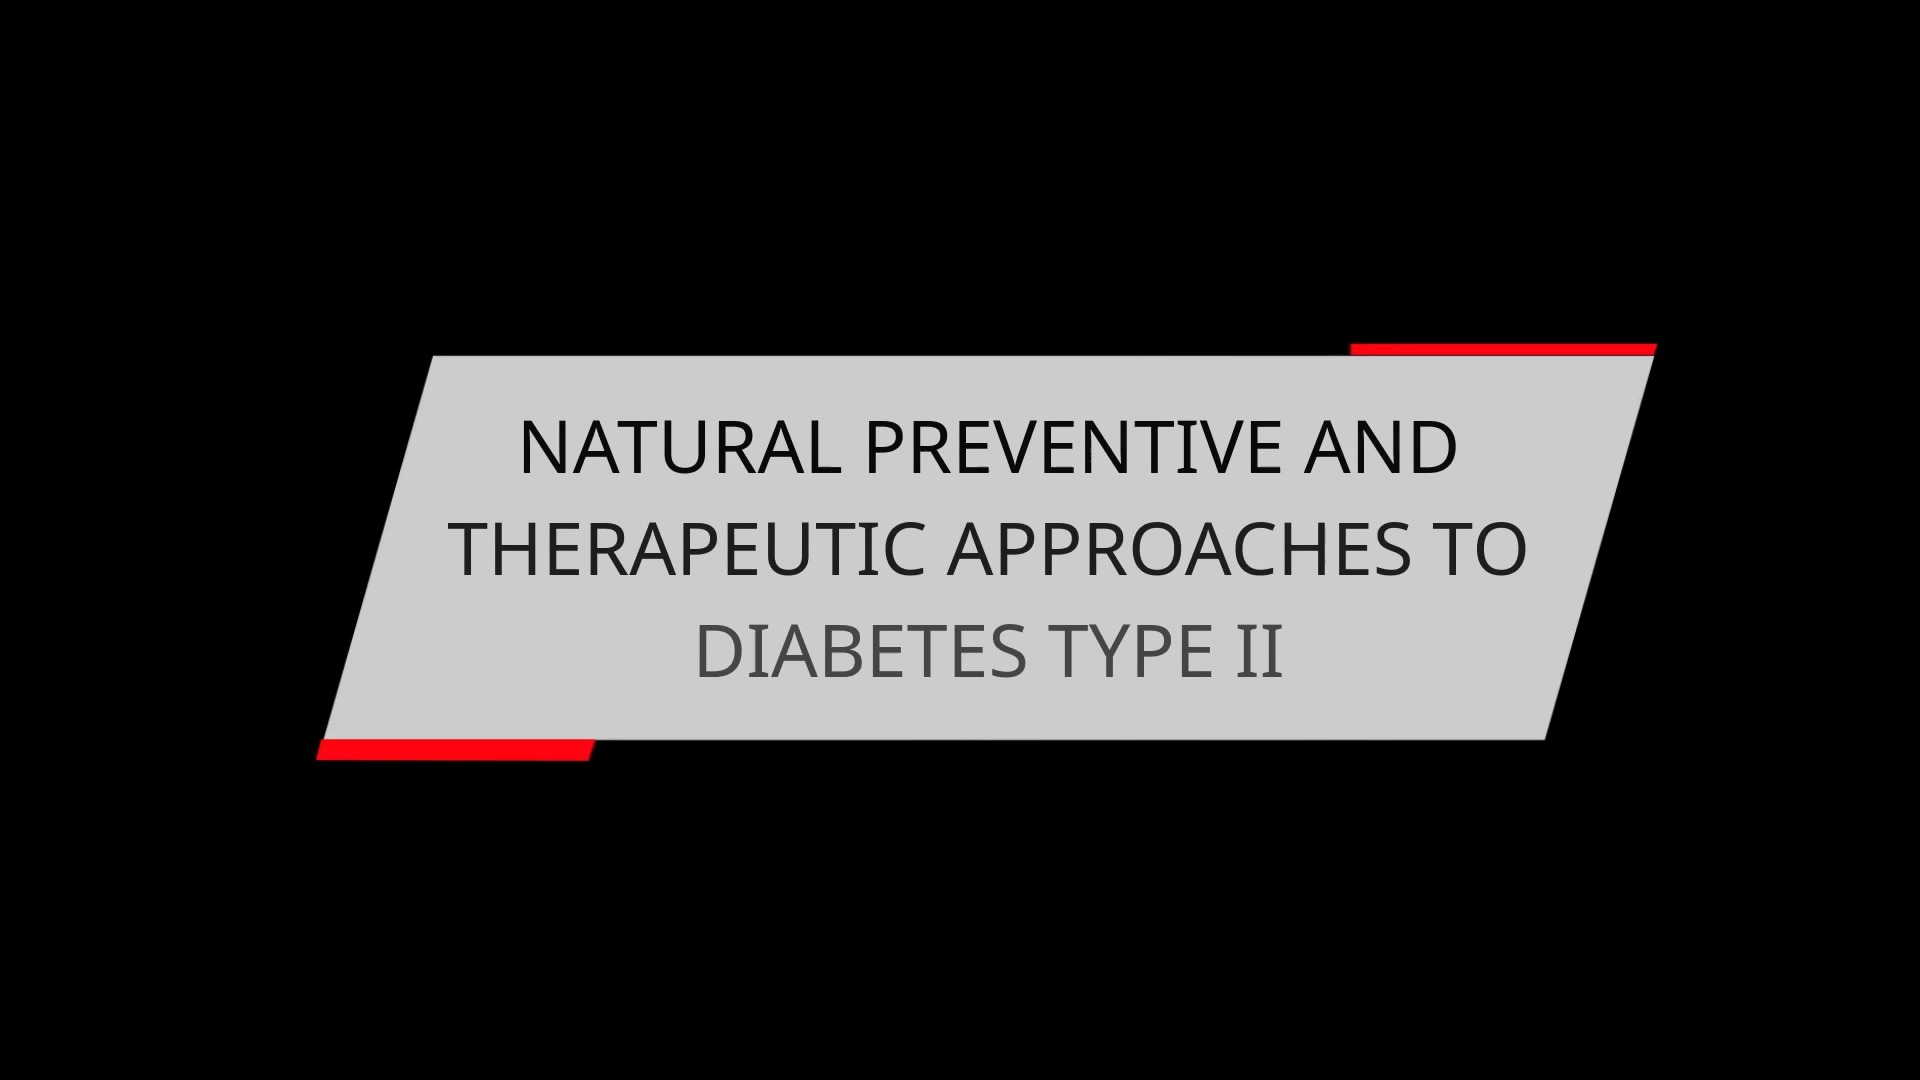 NATURAL PREVENTIVE AND THERAPEUTIC APPROACHES TO DIABETES TYPE II